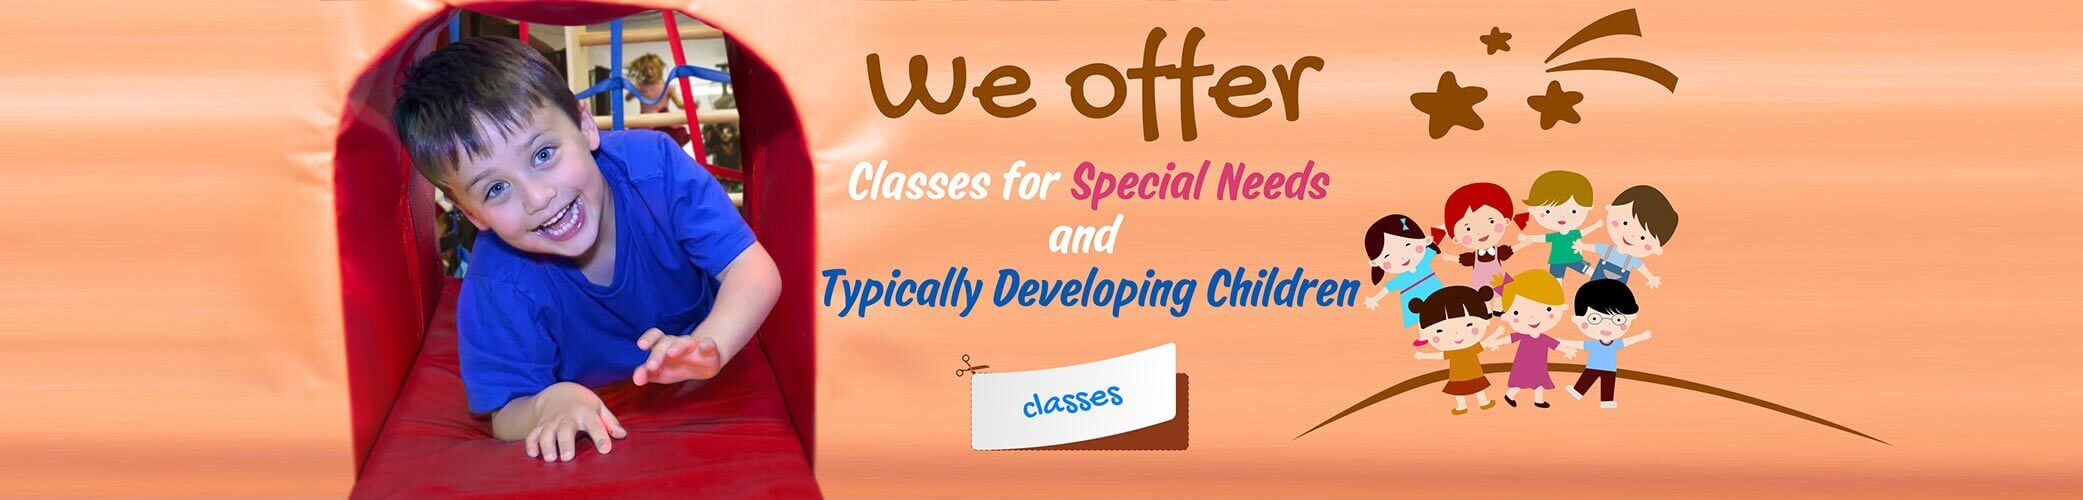 We Rock the Spectrum Dallas Classes for Special Needs